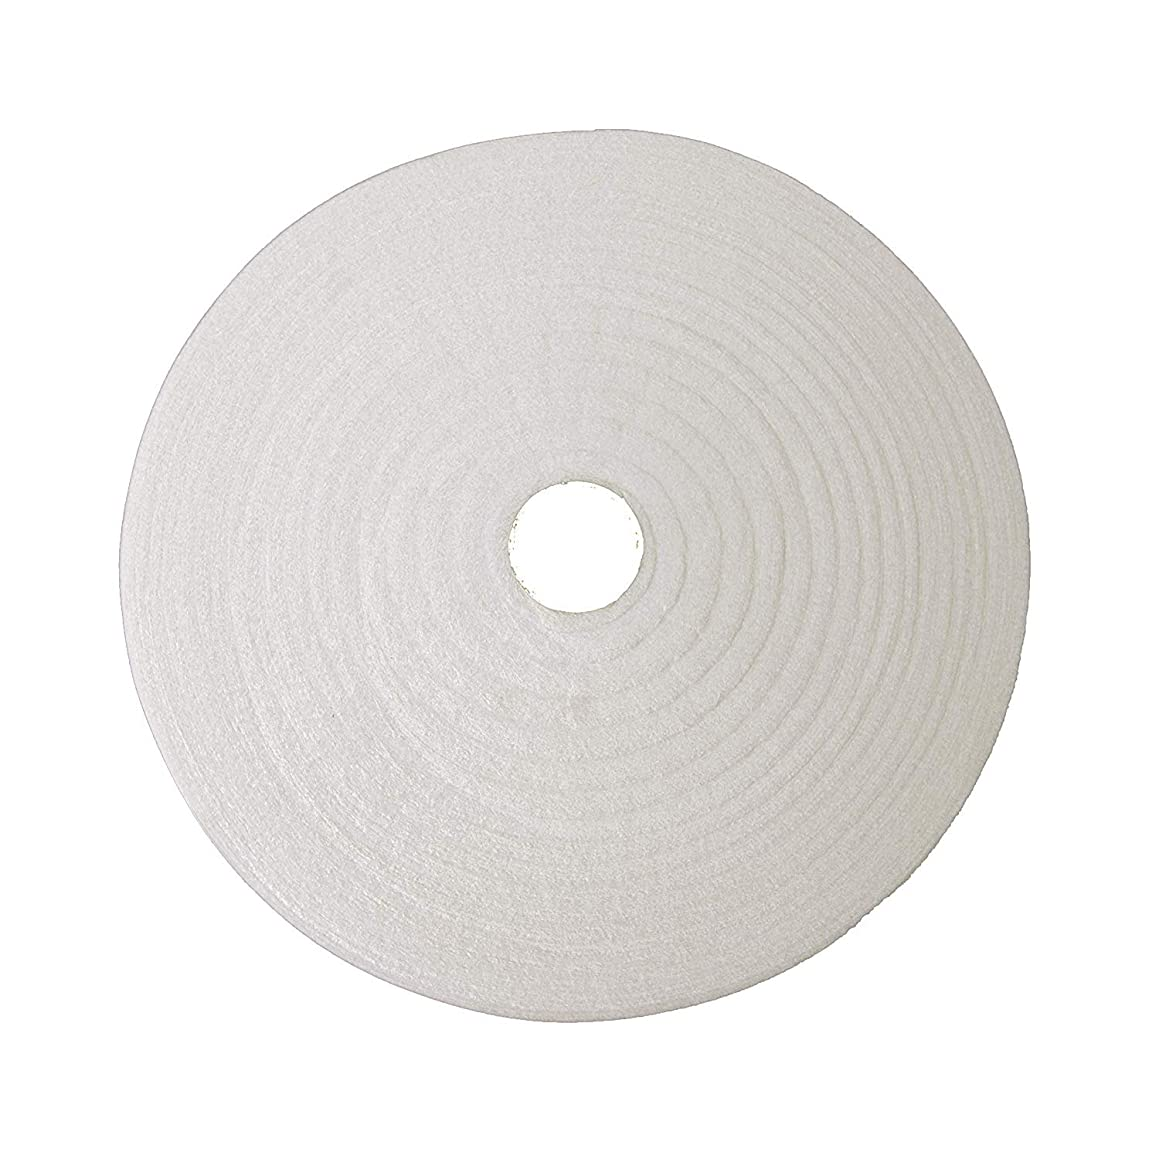 Zipcase On-A-Roll Upholstery Needle-Punched Cotton Batting for Jelly Roll Rugs, Purses, 2-1/4 inches by 25 Yards